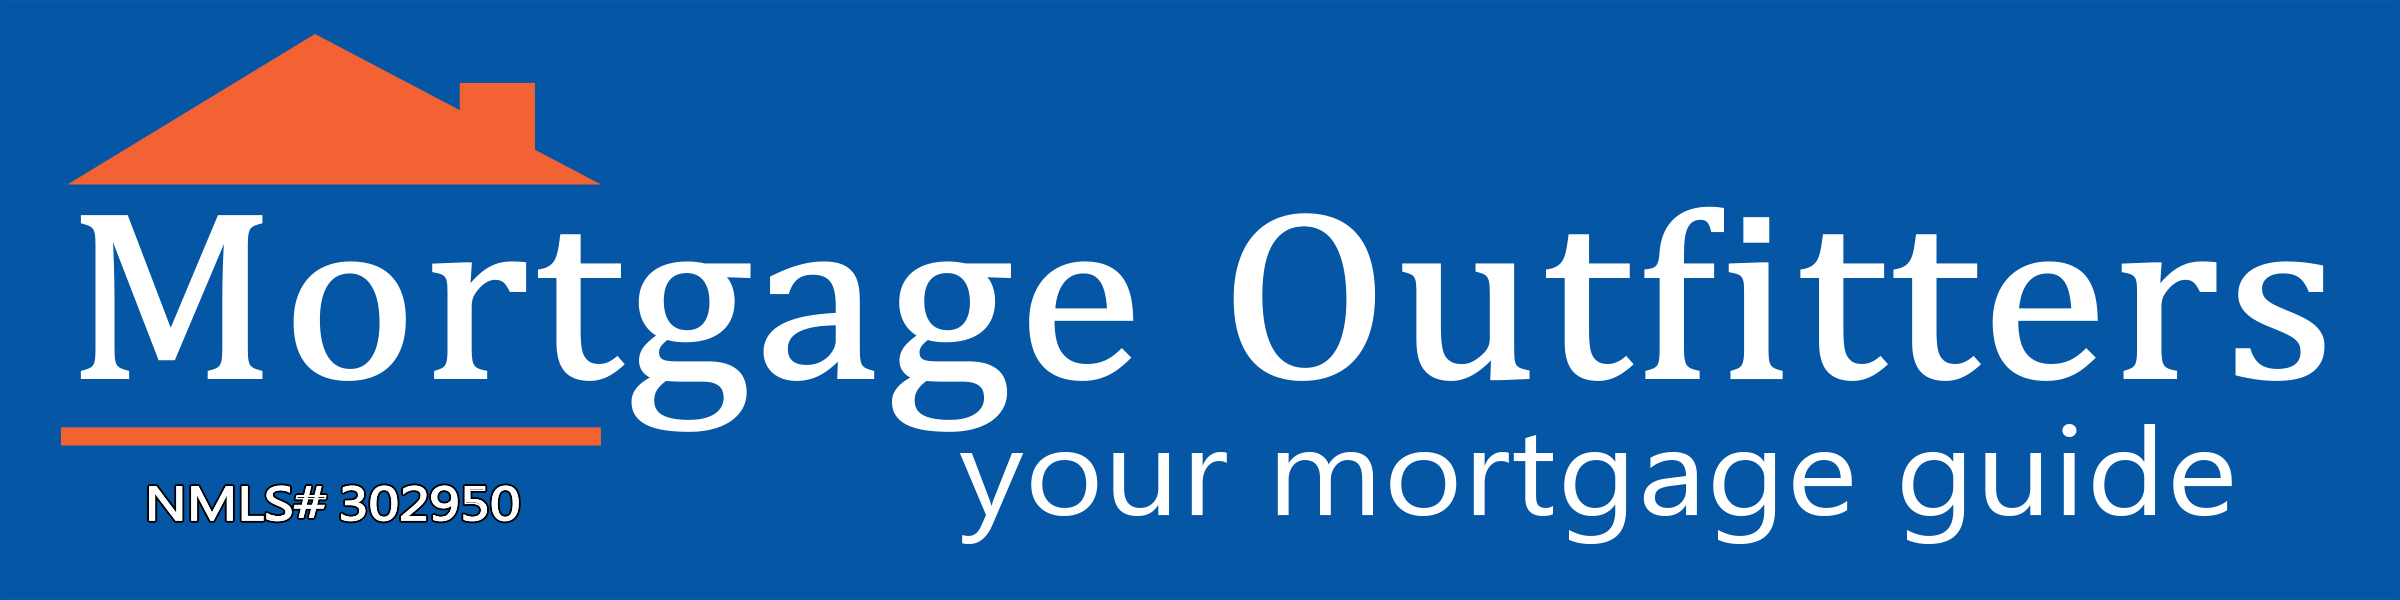 Mortgage_outfitters_logo_-_color